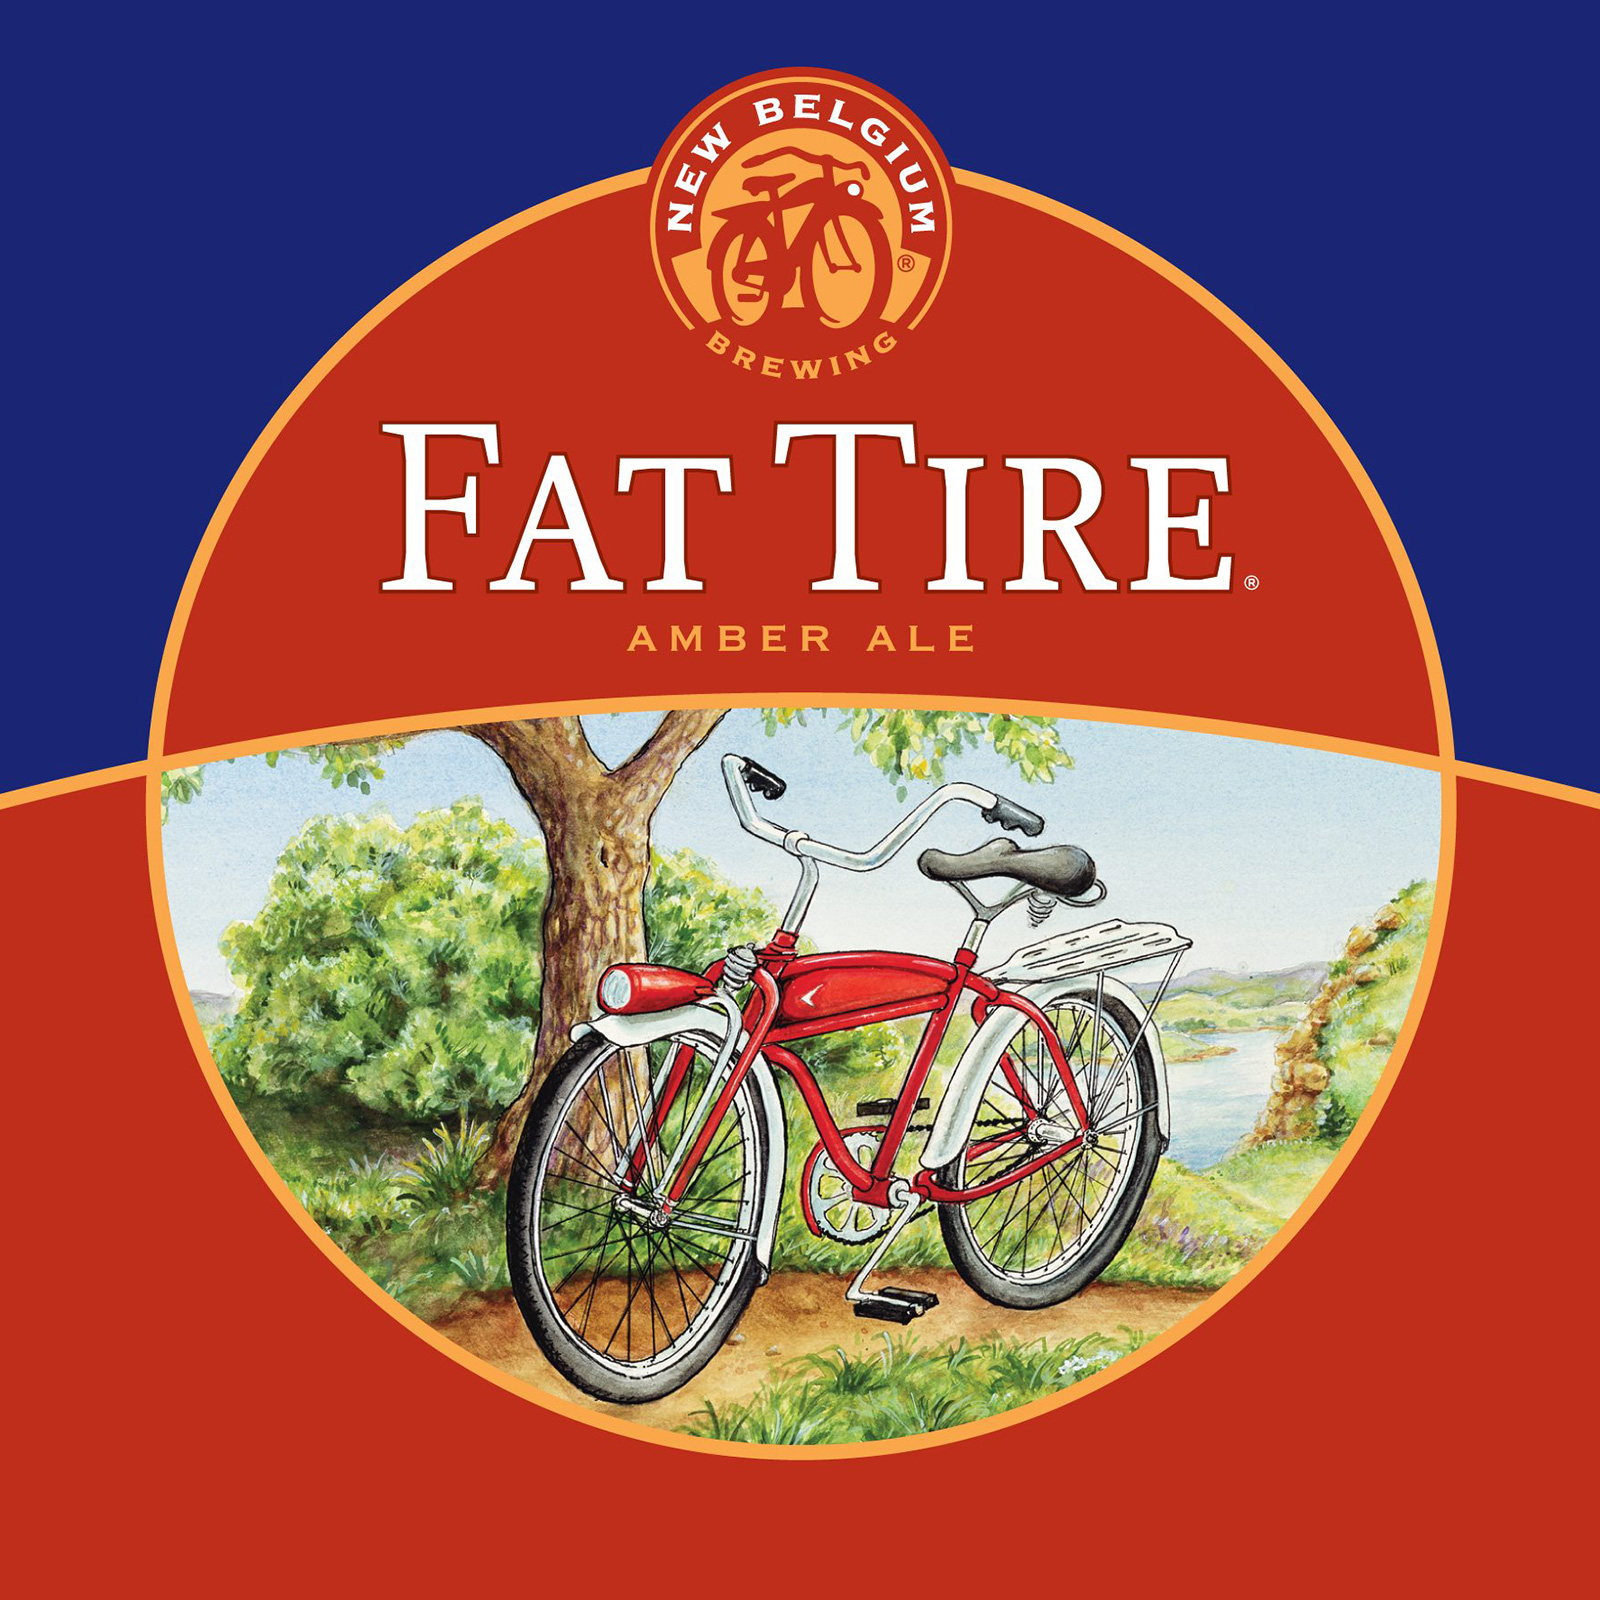 New Belgium's Fat Tire Amber Ale